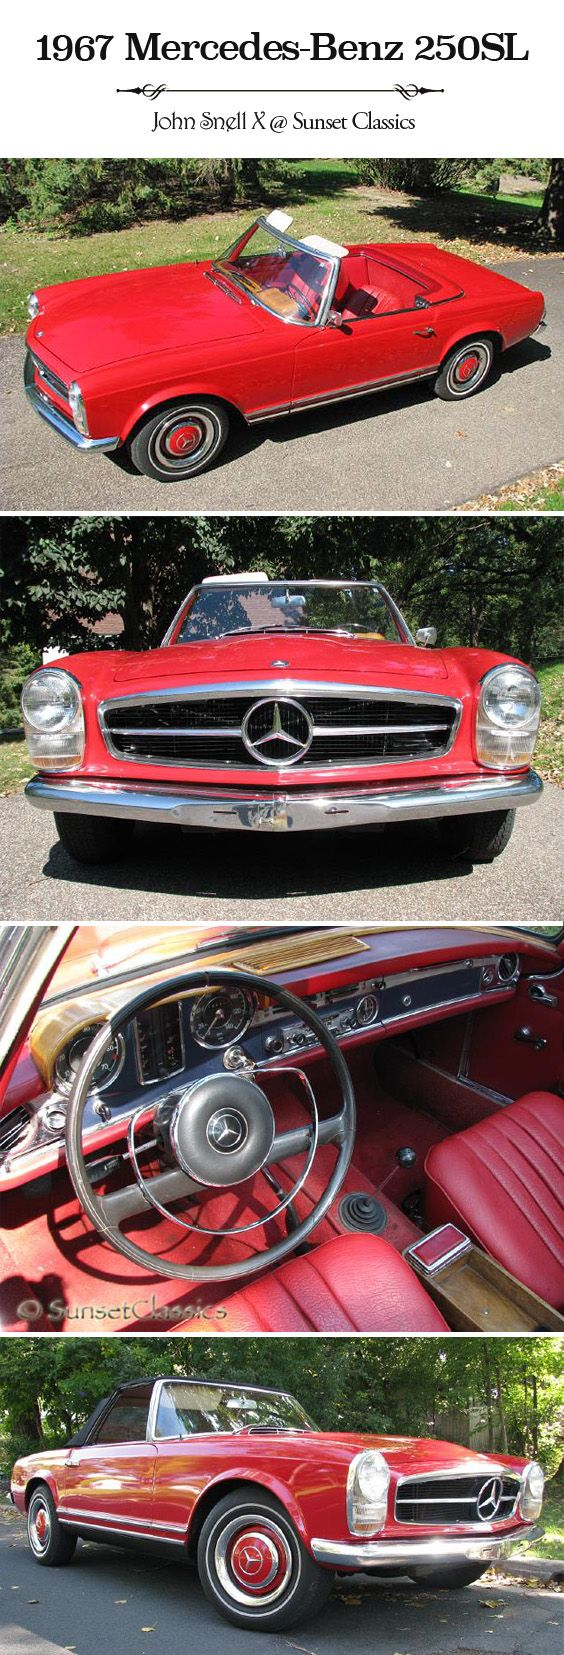 Beautiful rare 1967 Mercedes-Benz 250SL for sale from Sunset Classics. The one year production run of the '67 250 SL makes it the rarest of all W 113 cars! #sunsetclassics #Mercedes #1967